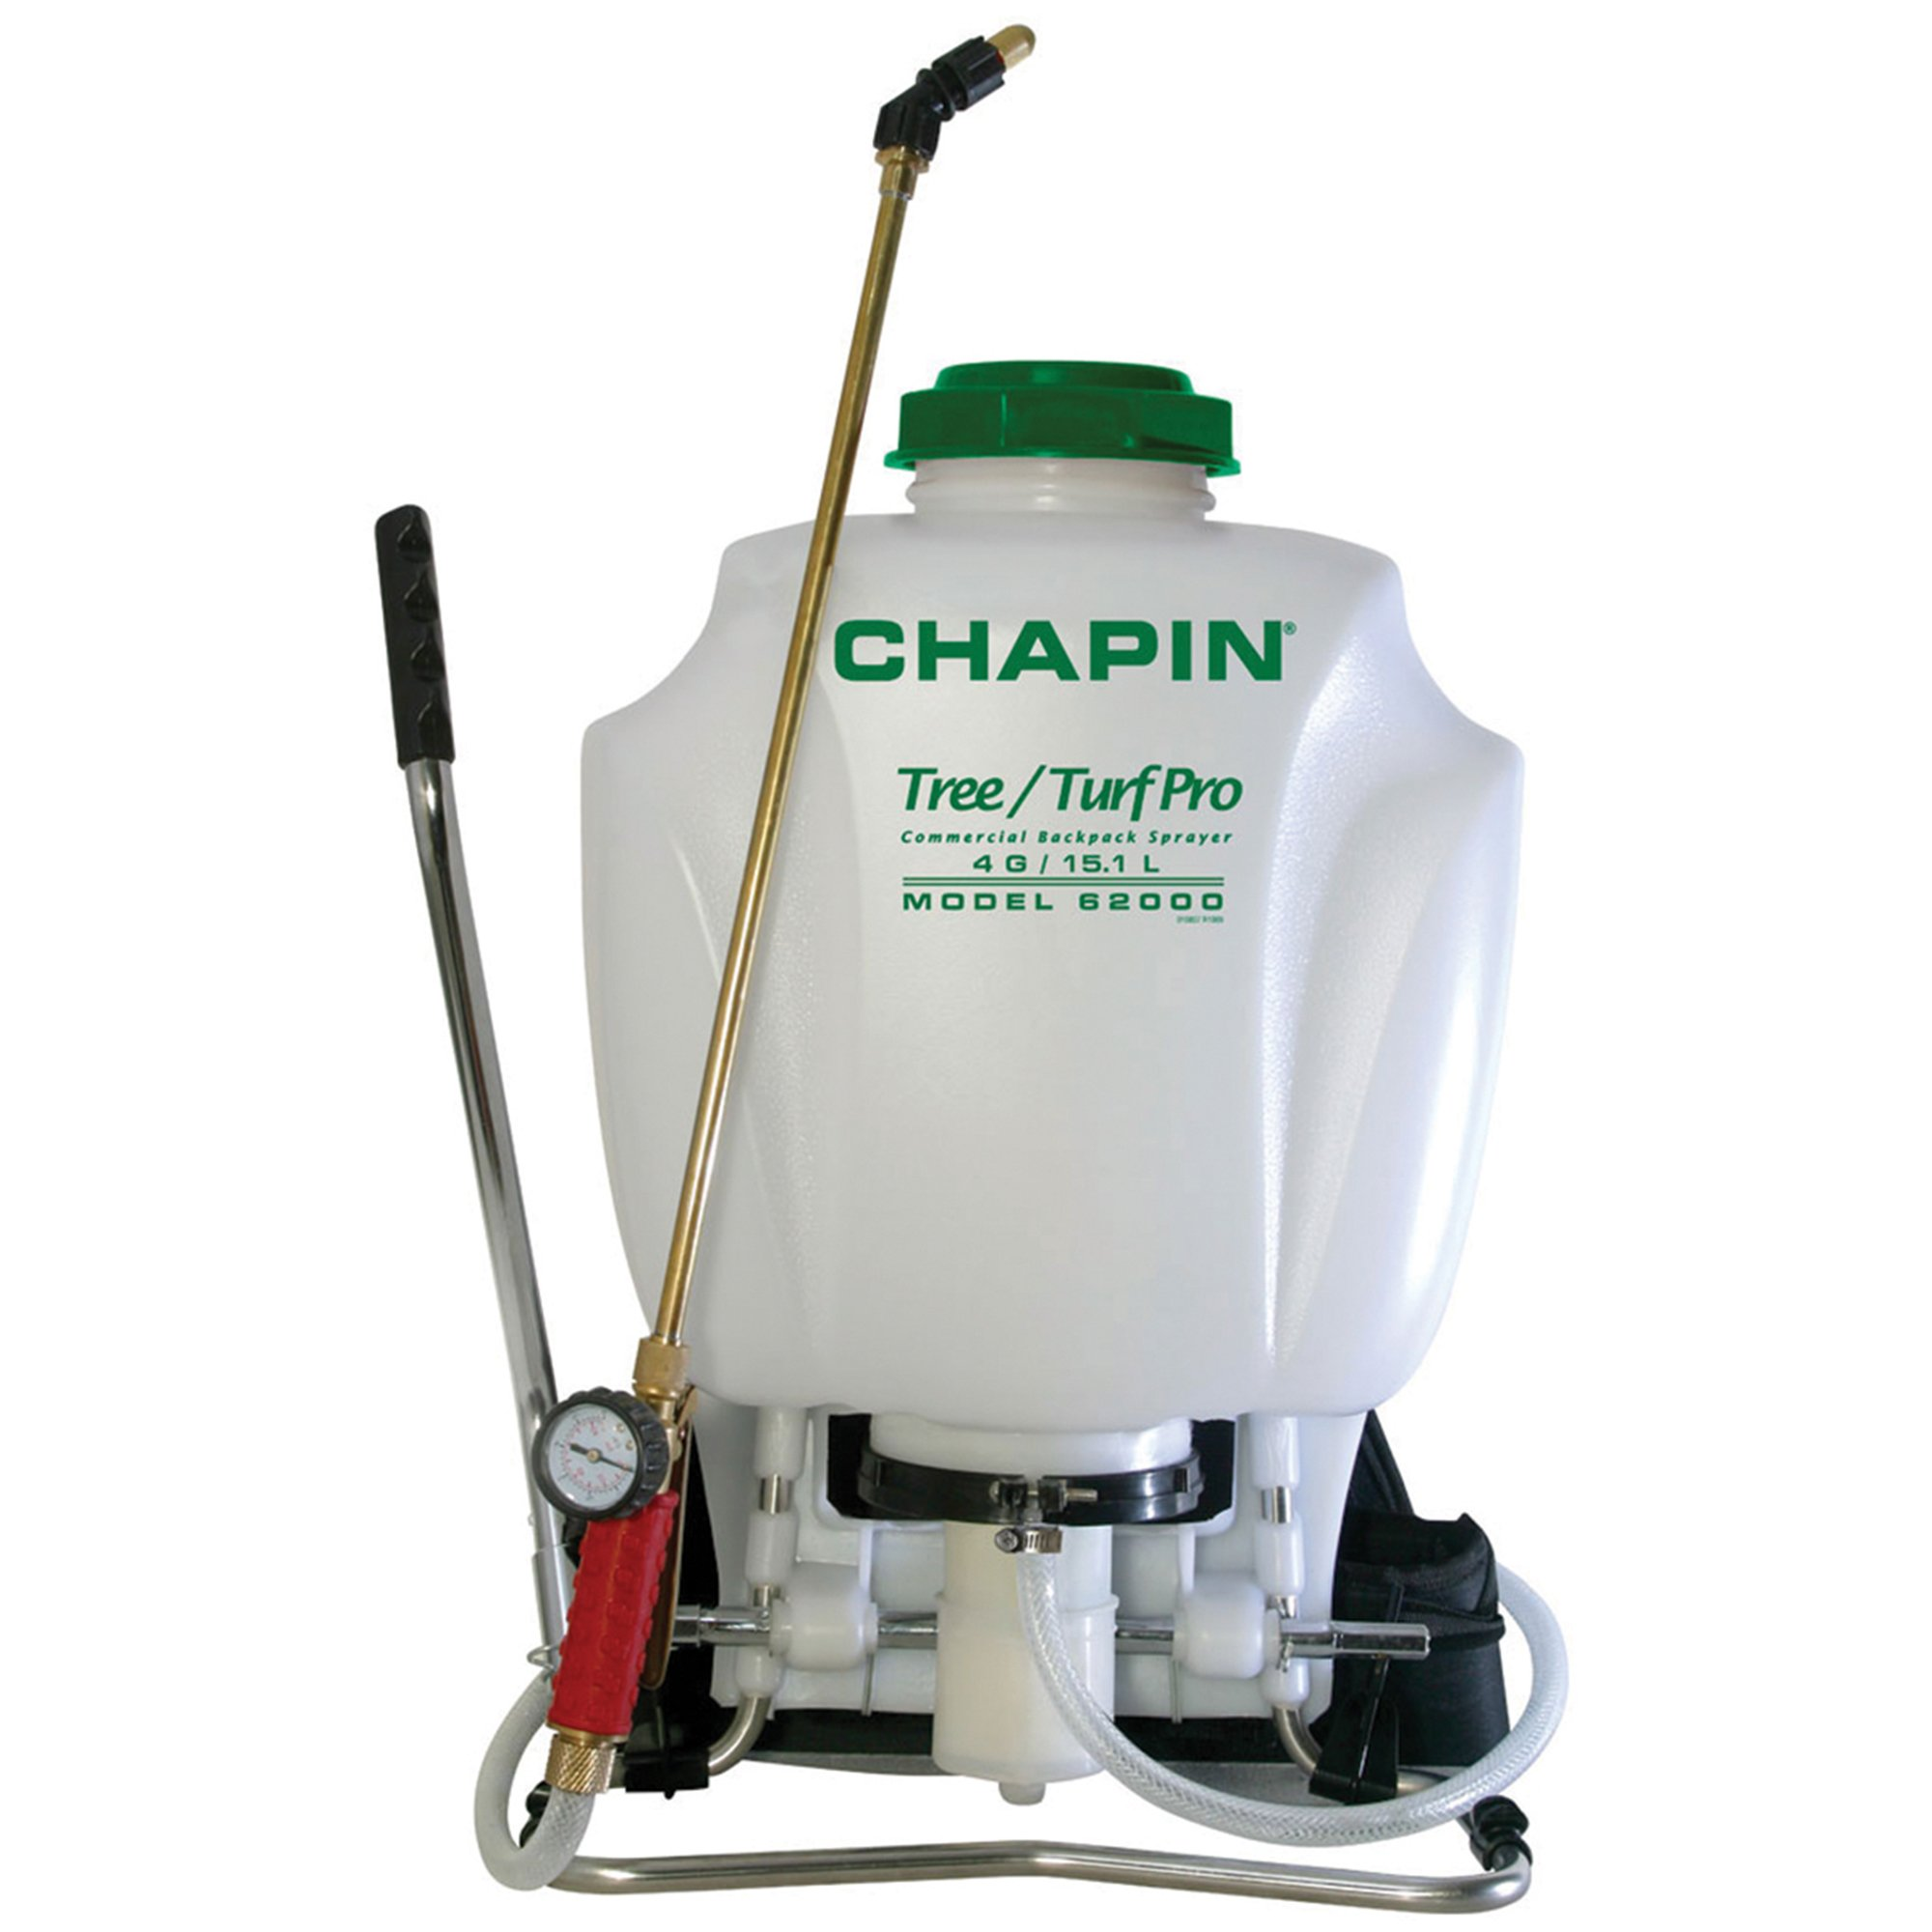 Chapin 62000 4-Gallon Tree/Turf Pro Commercial Backpack Sprayer With Control Flow Valve Technology For Fertilizer, Herbicides and Pesticides by Chapin International (Image #1)